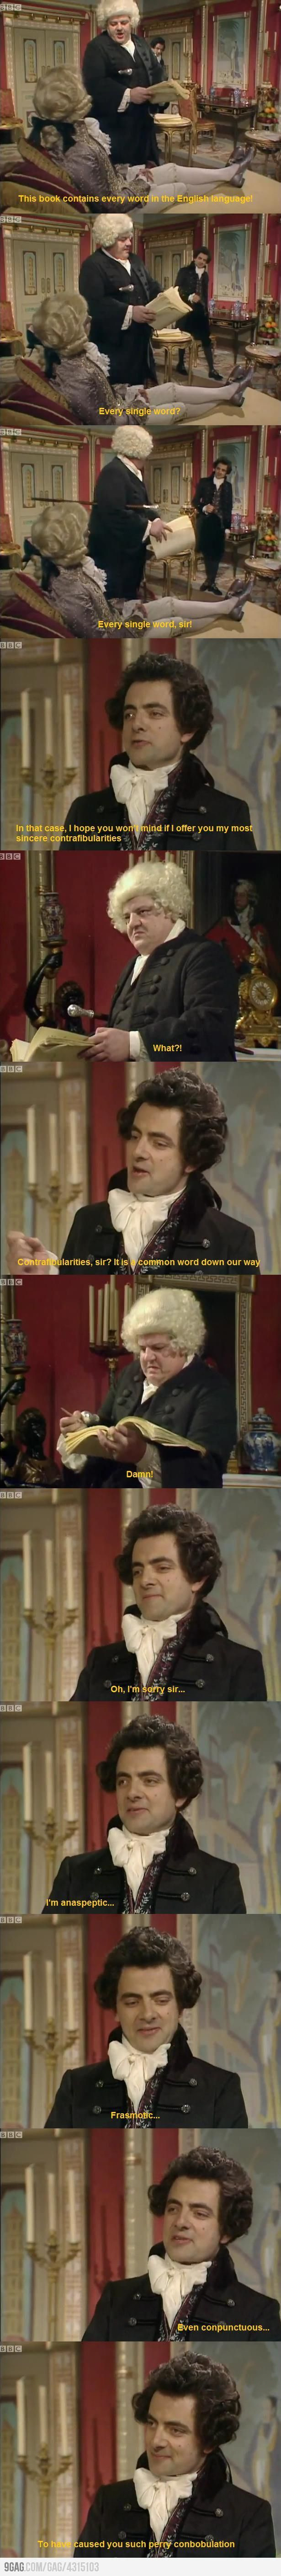 Black Adder the troll.